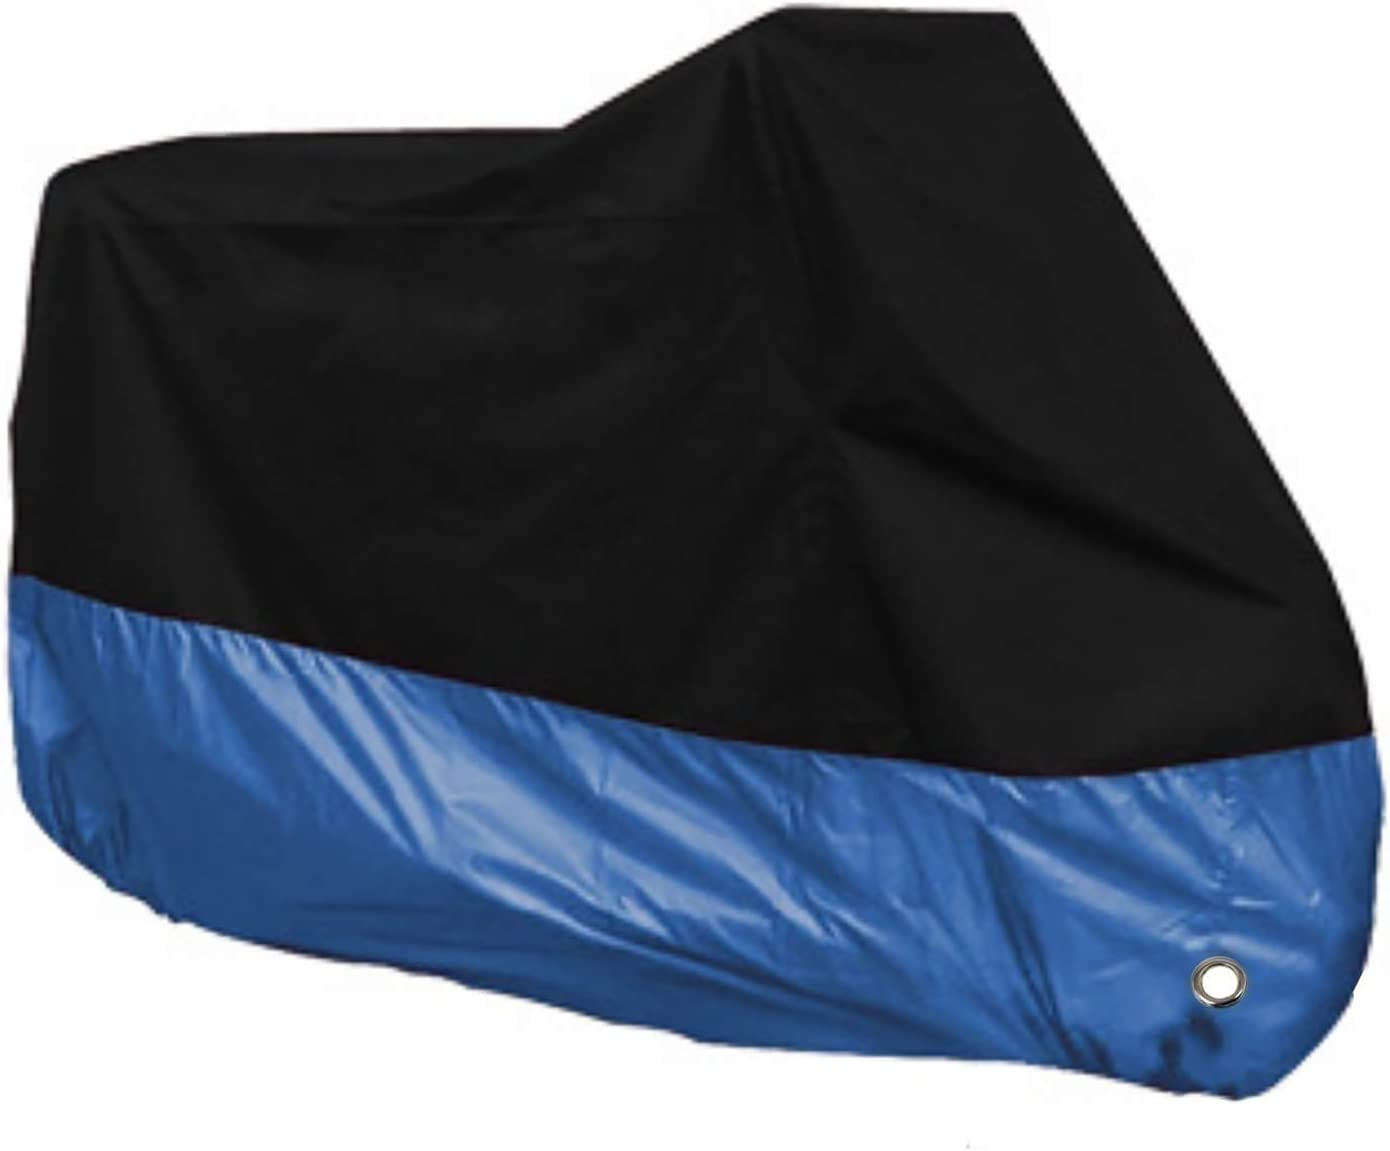 HEQCG Powersports outlet Vehicle Covers Compatible with Price reduction Motorcycle Cove